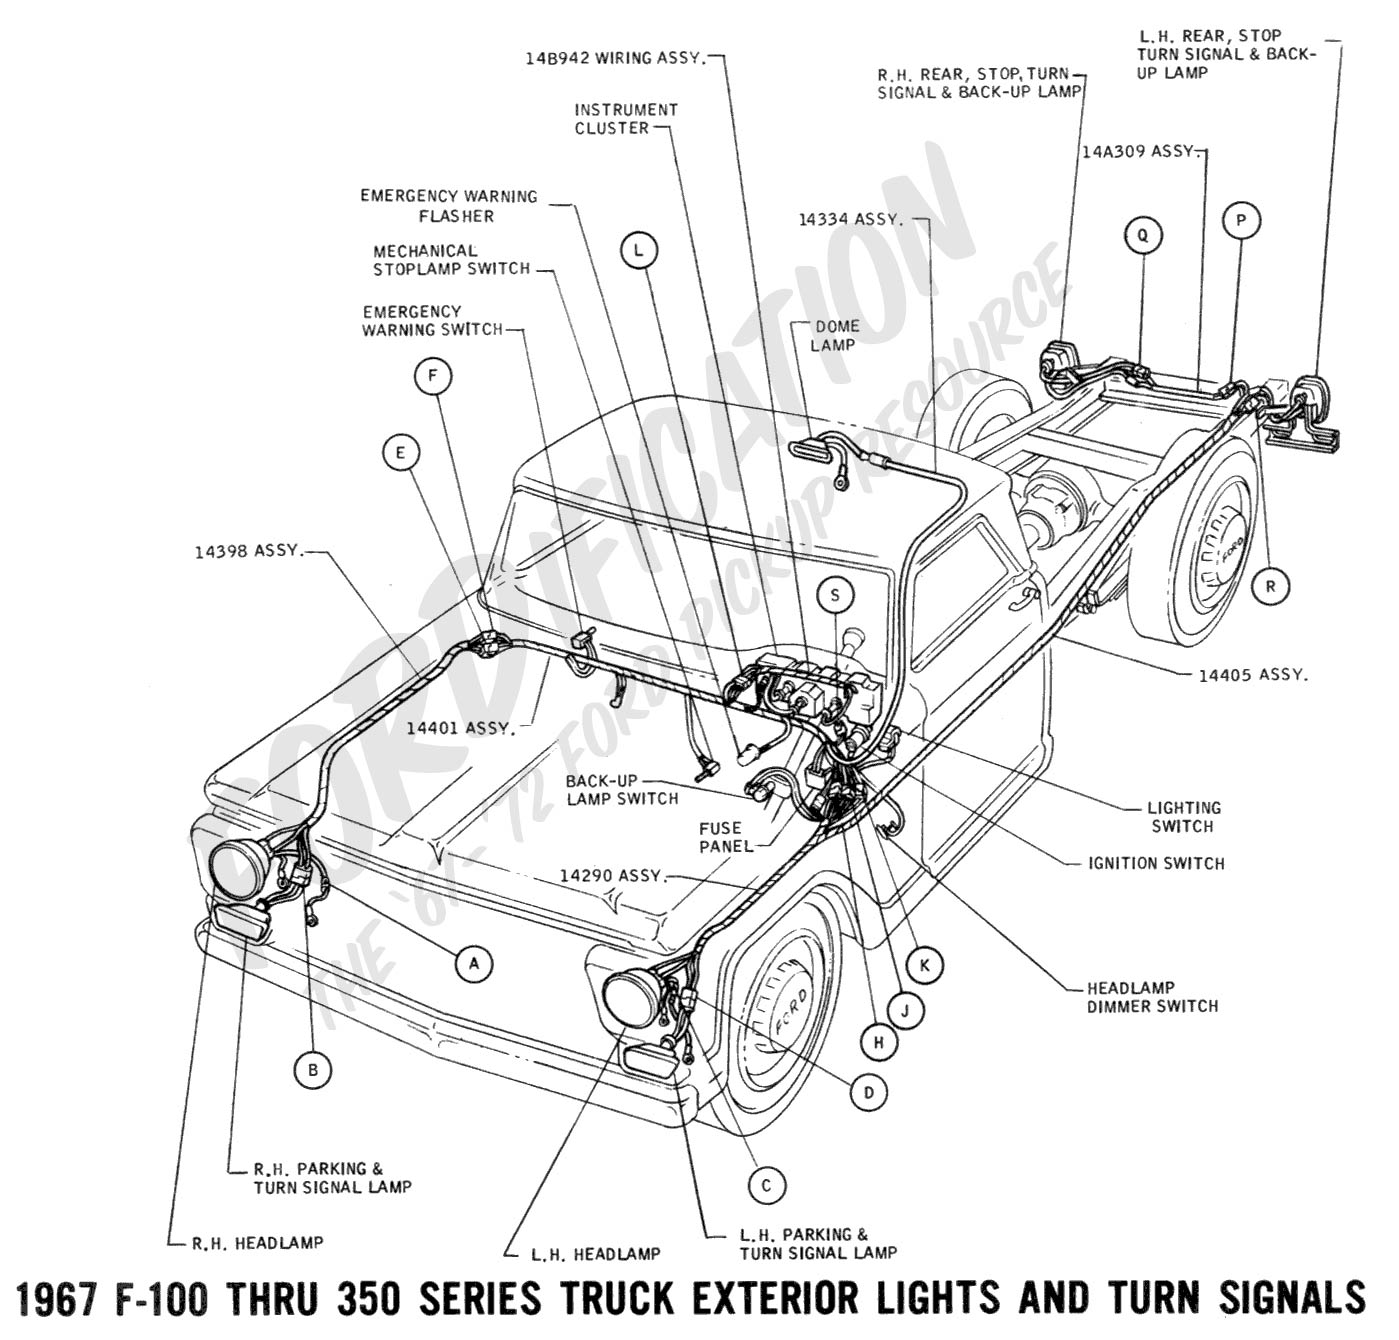 wiring 1967extlights01 ford truck technical drawings and schematics section h wiring 1999 ford f150 turn signal wiring diagram at readyjetset.co